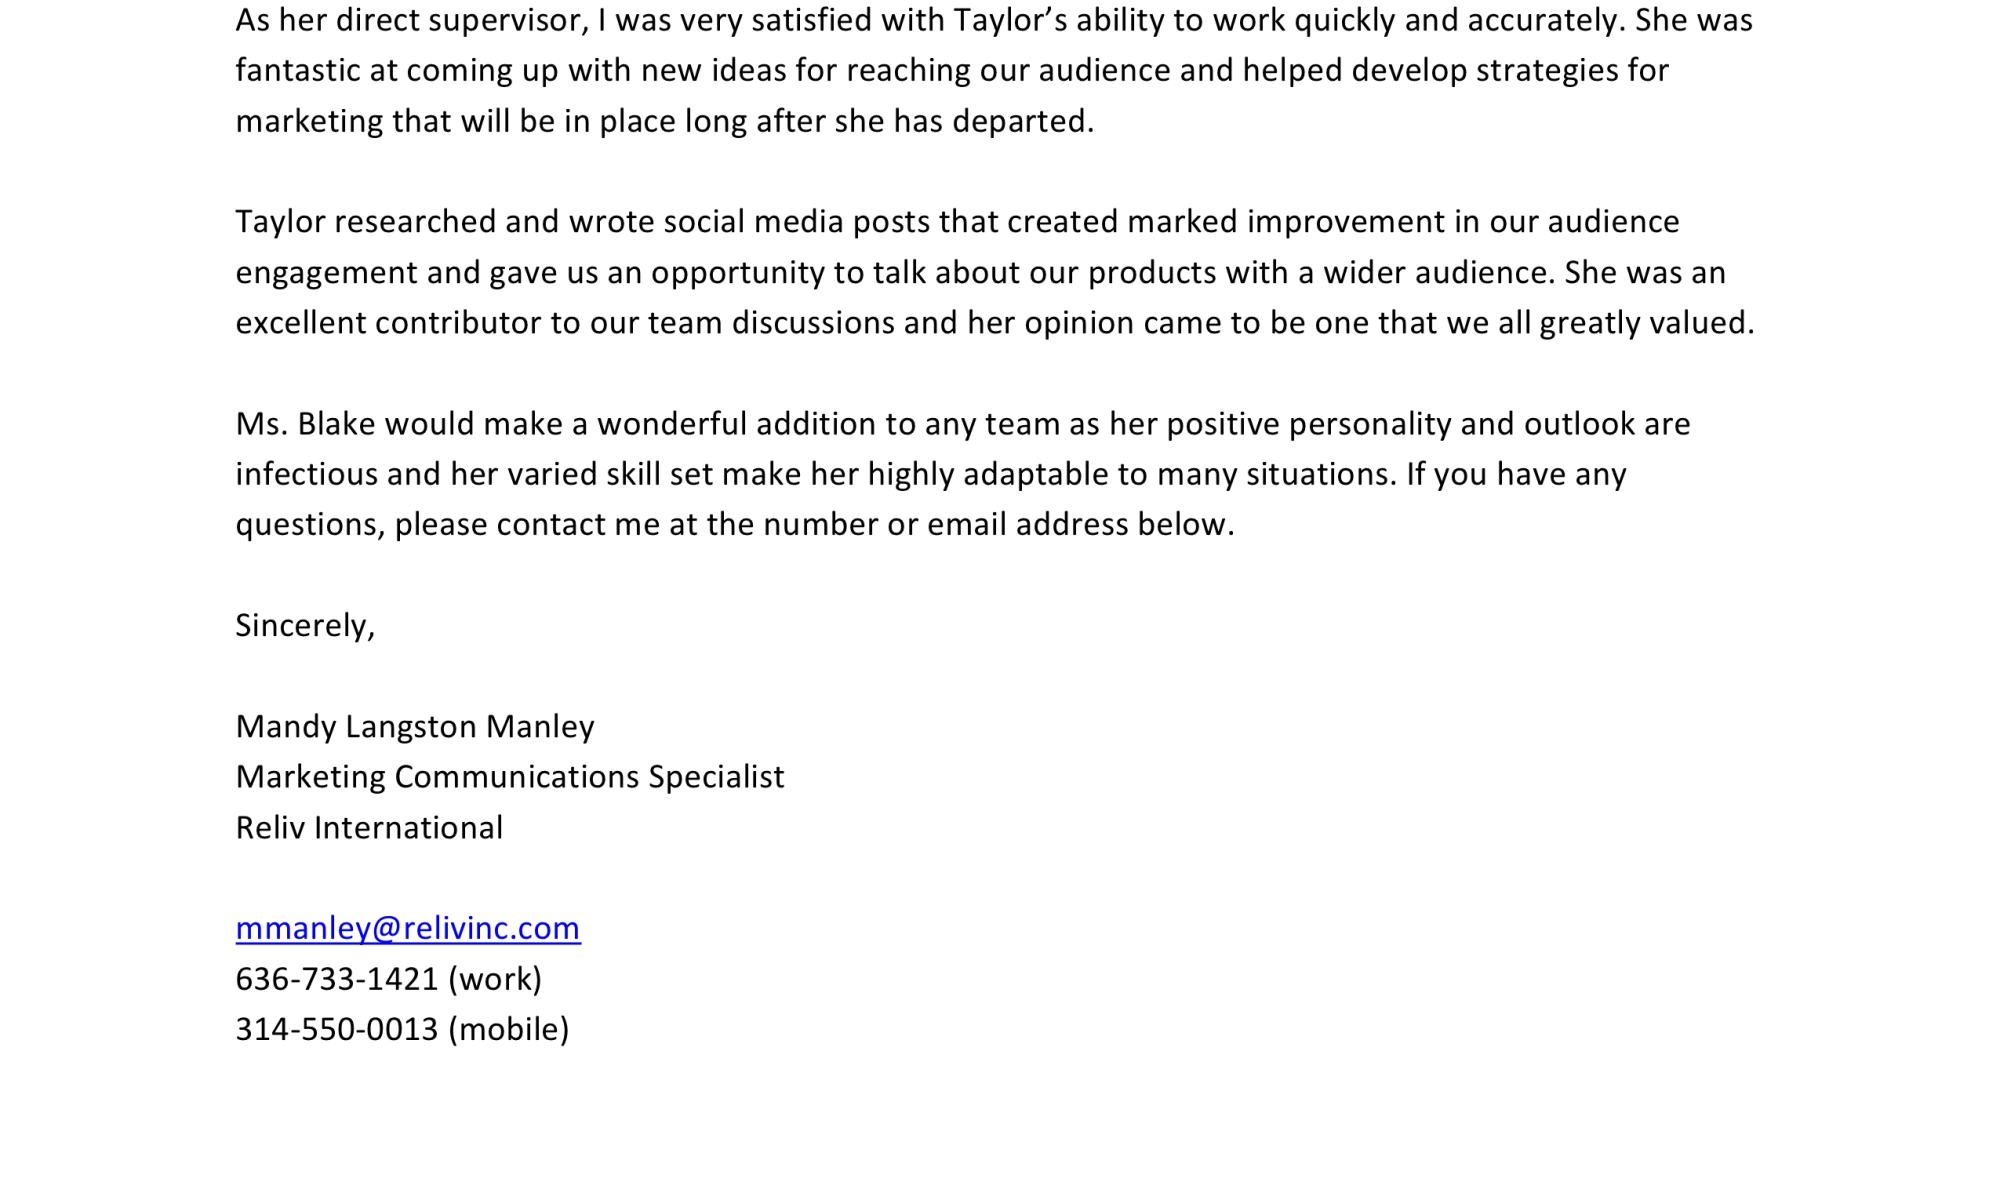 Recommendation letter for Taylor Blake from Mandy Manley, Marketing Communications Specialist for Reliv International.